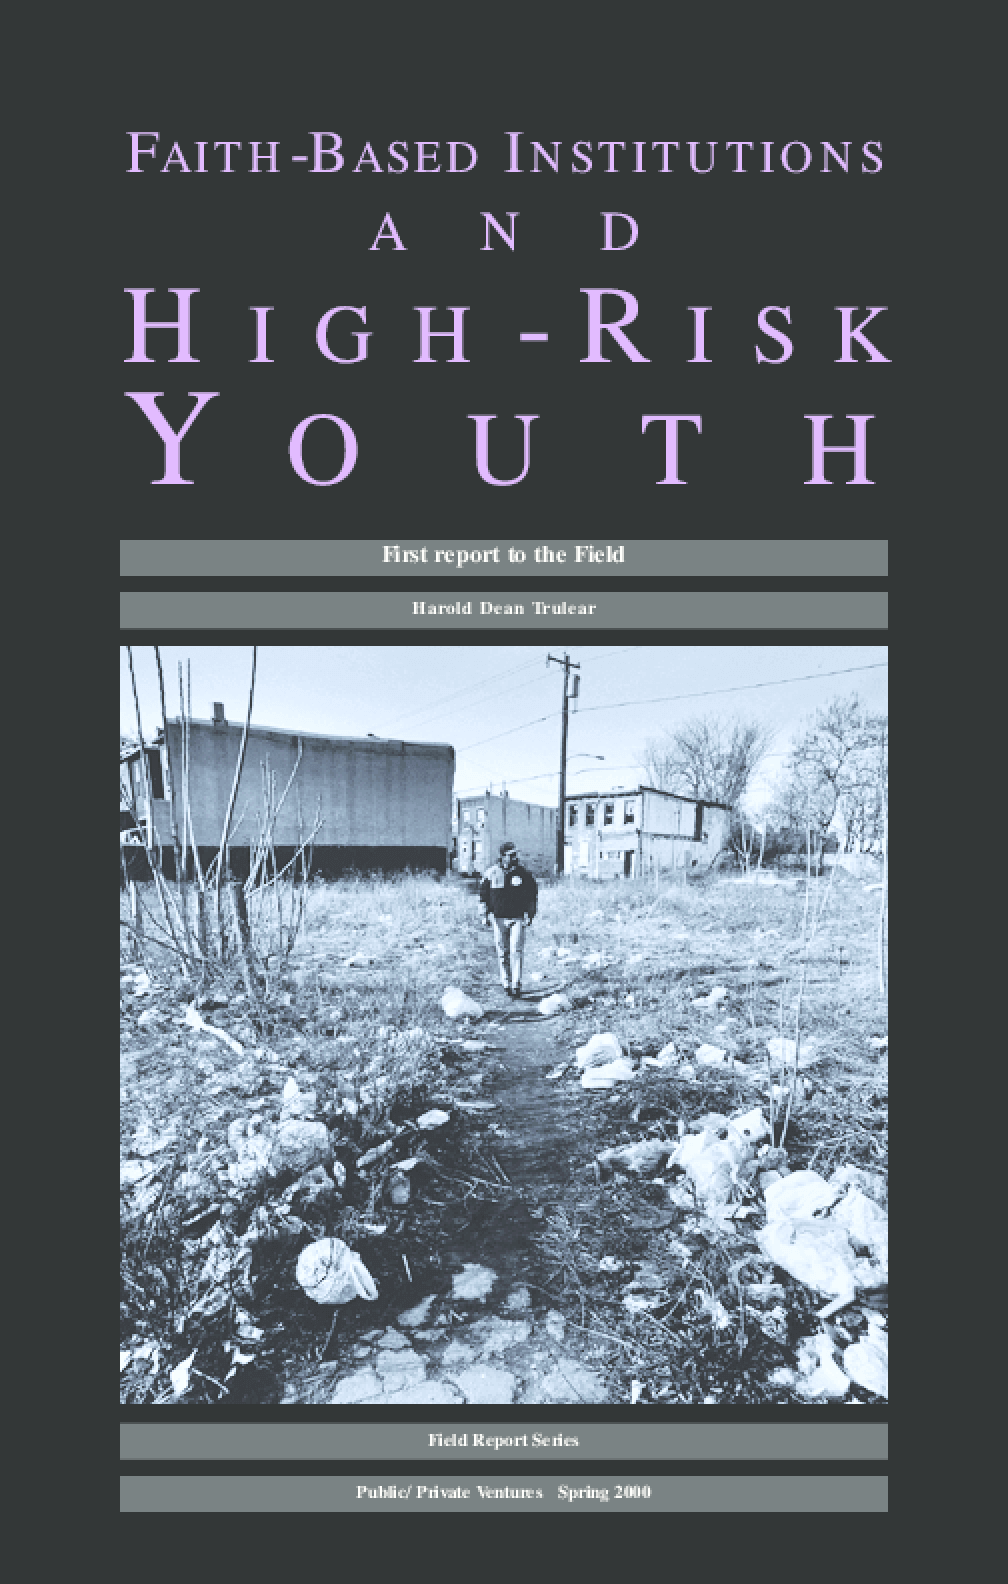 Faith-Based Institutions and High-Risk Youth